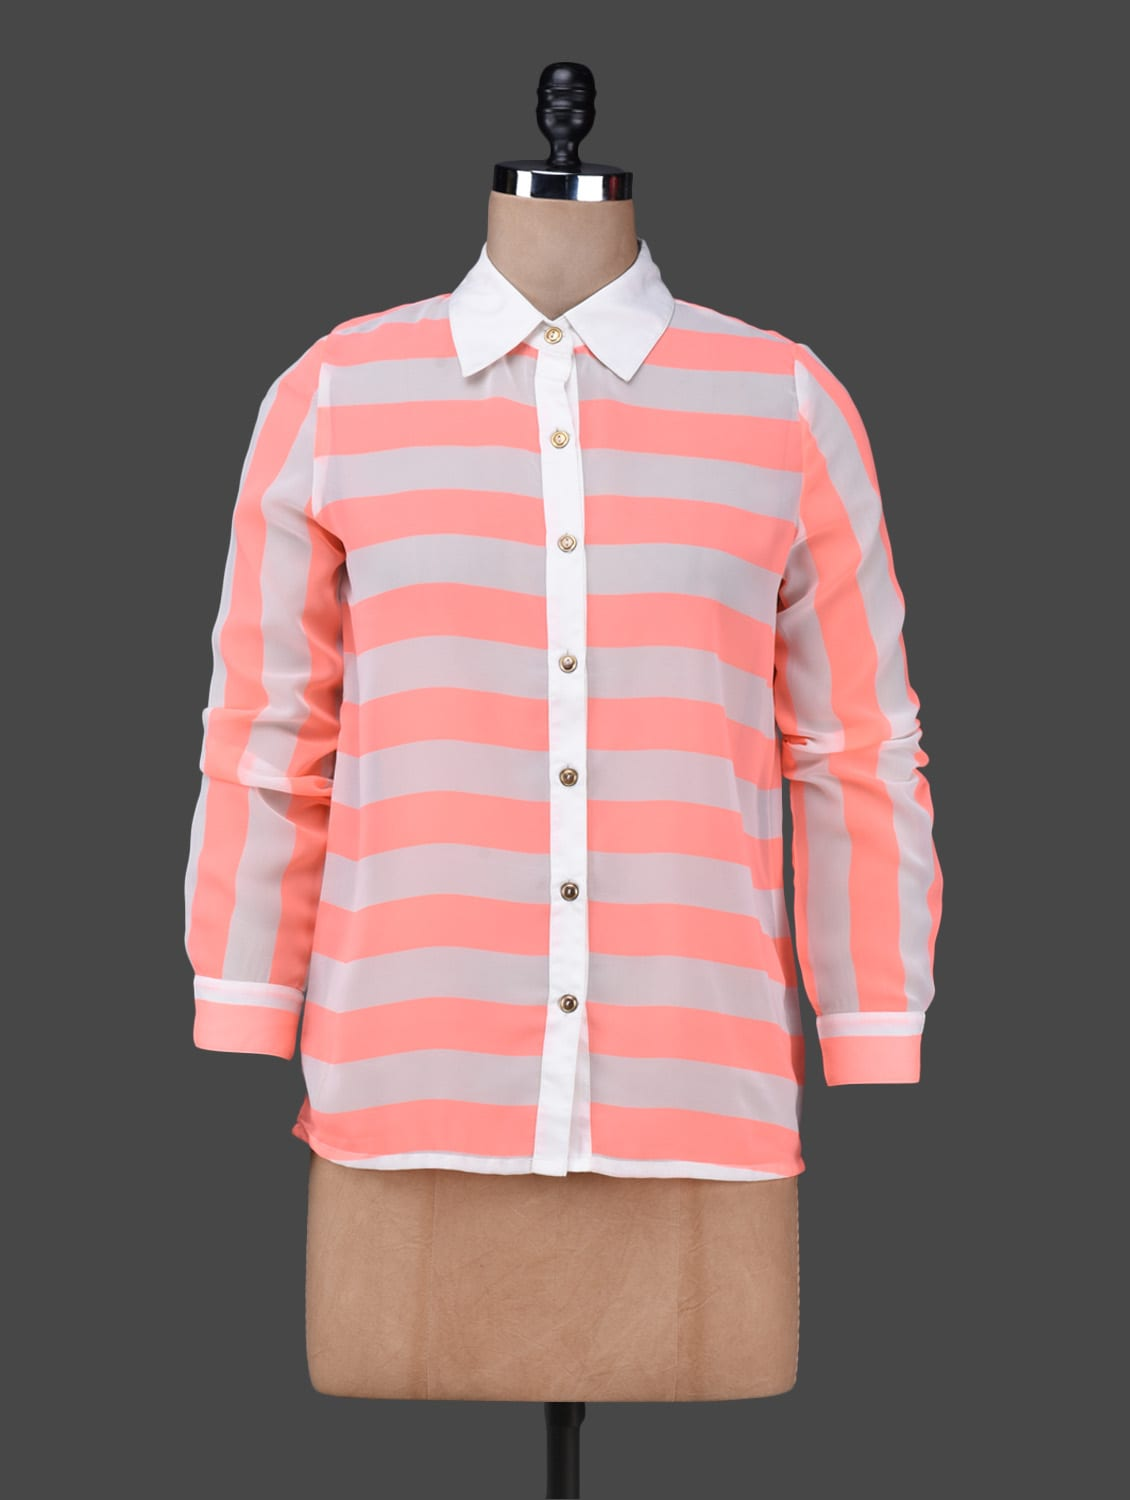 Neon Pink And White Striped Shirt - Texco